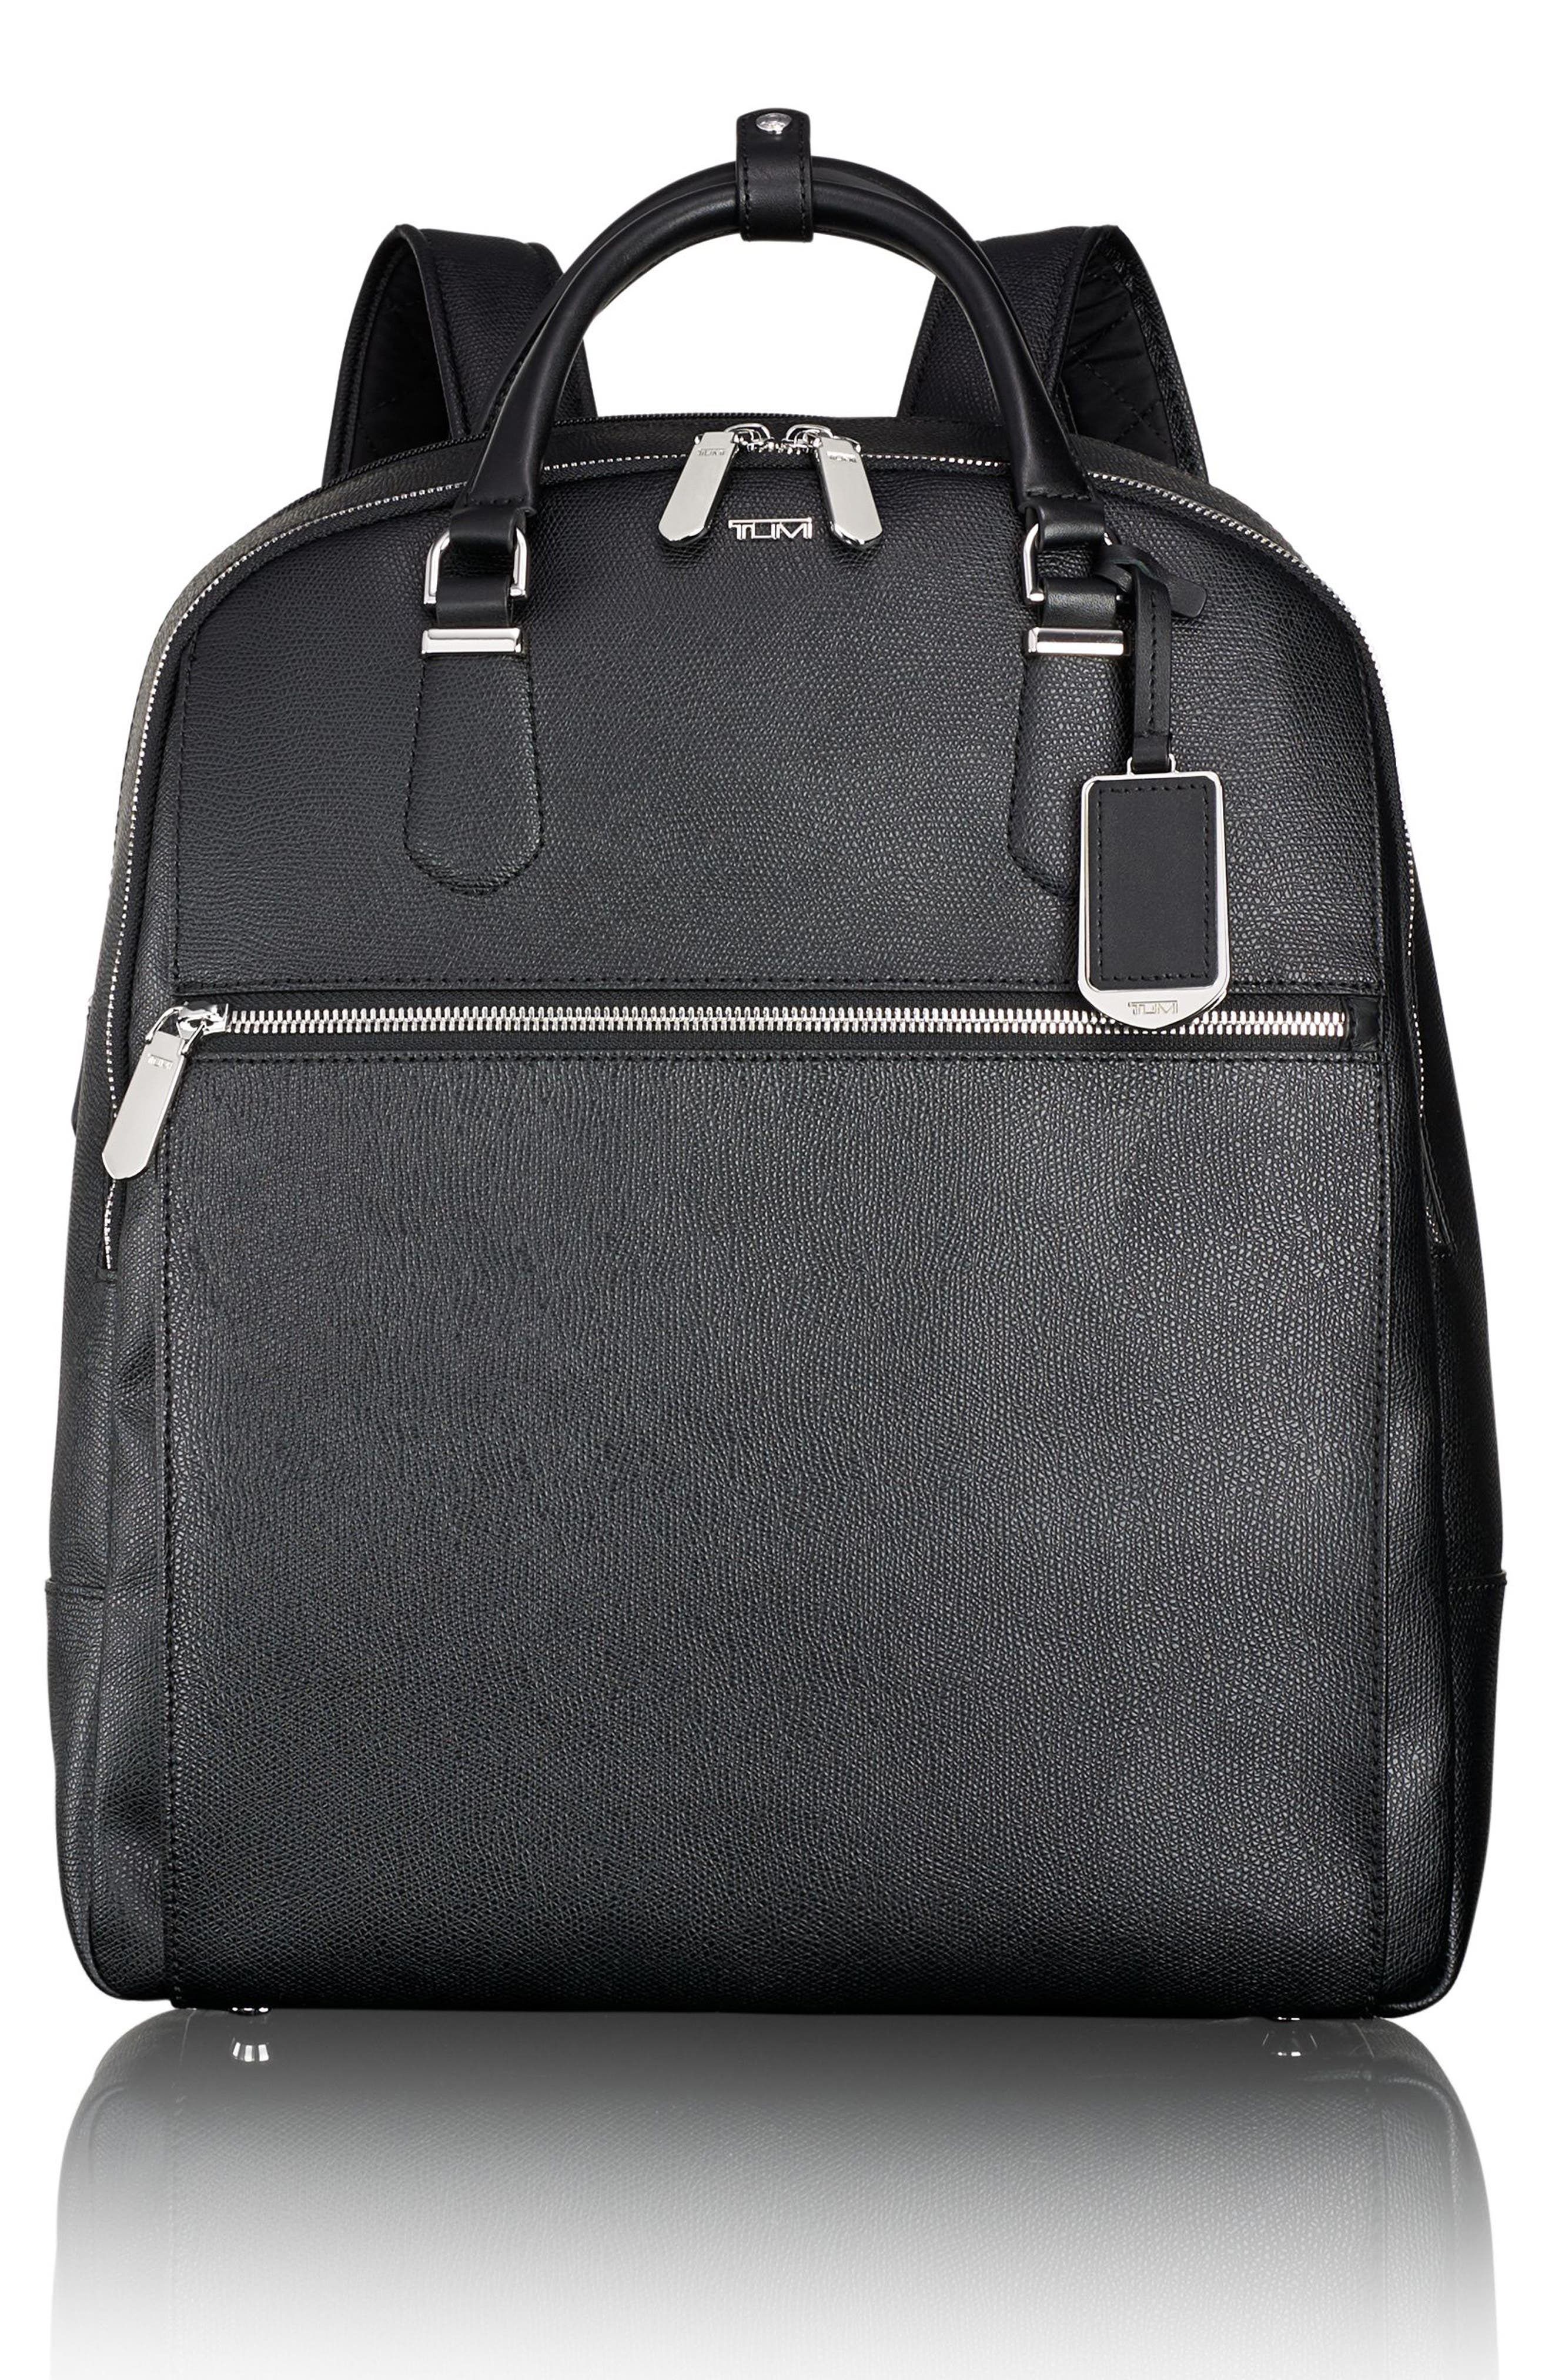 Tumi Odel Convertible Backpack